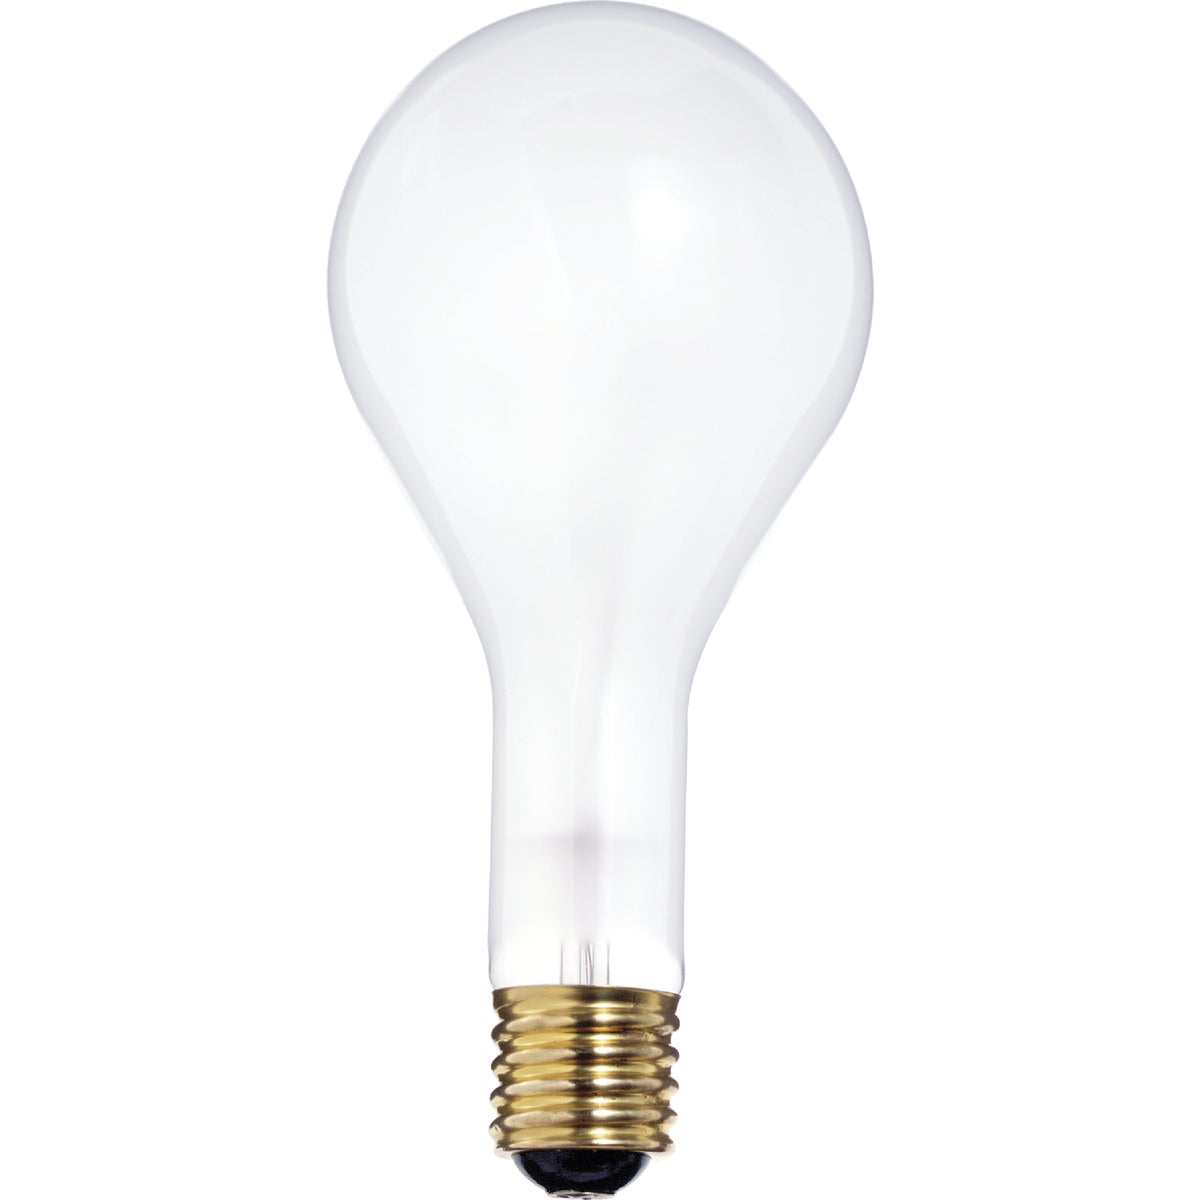 300W IF INCANDESCNT BULB - 21079 300/IF by G E Lighting